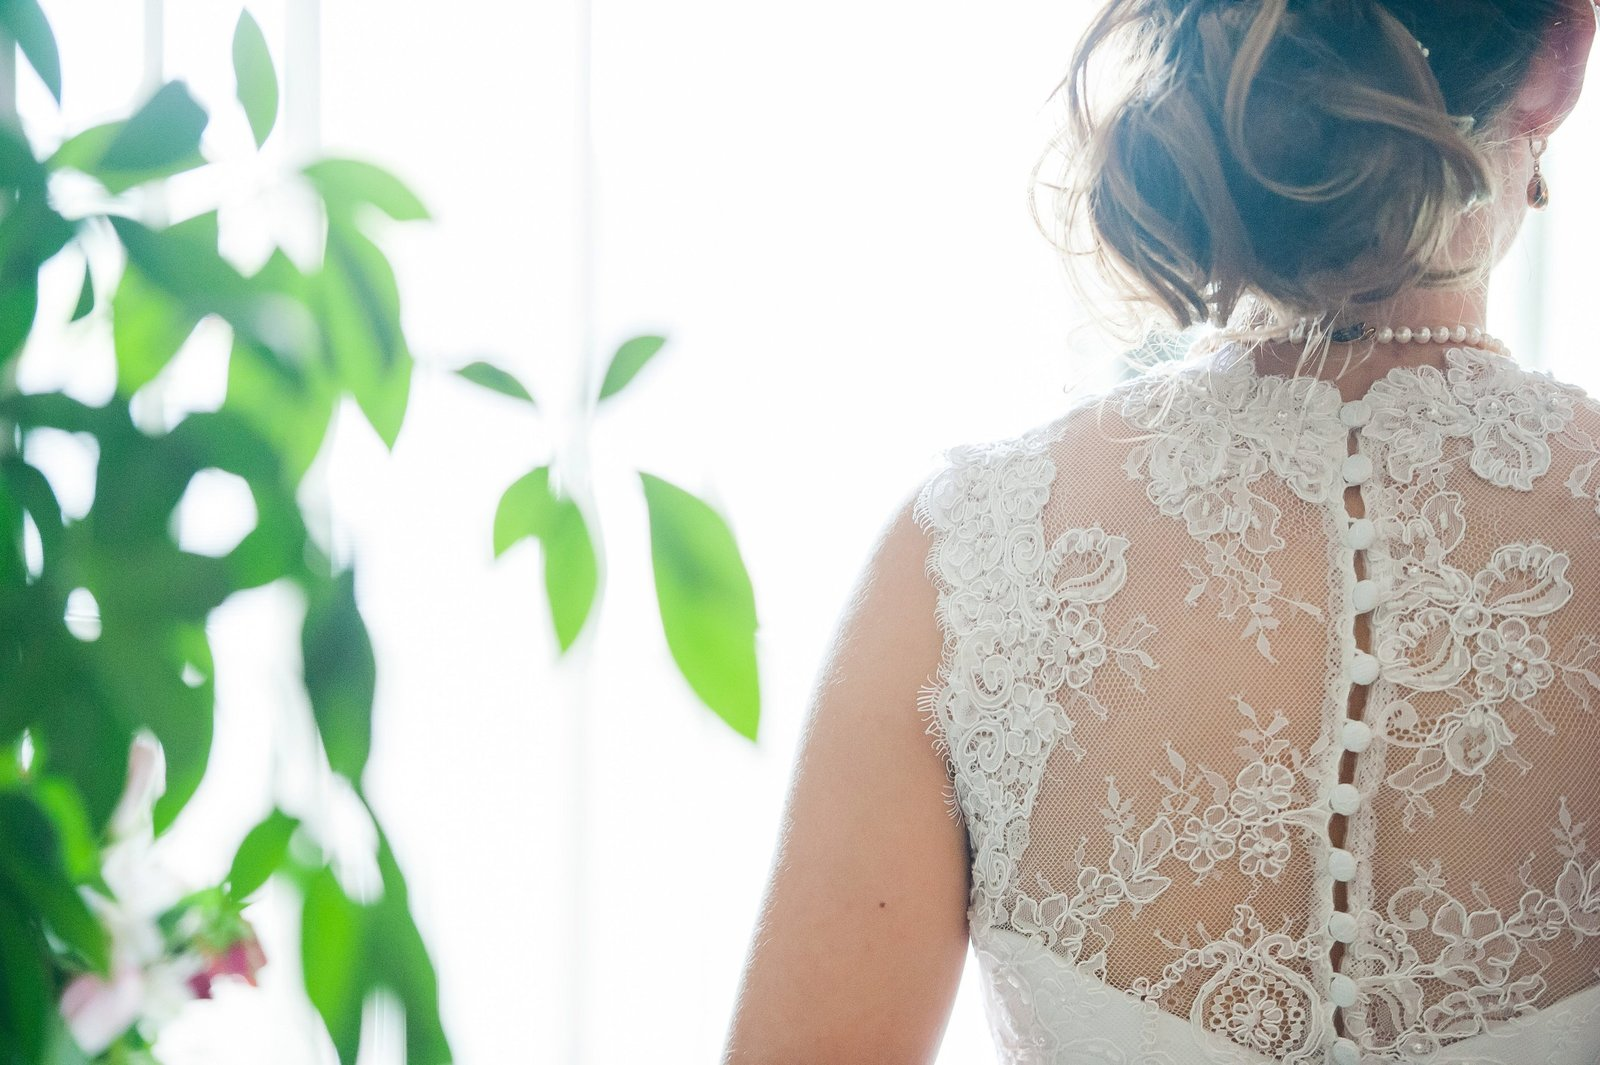 Lacy wedding dress lace and buttons getting ready images by kris kandel